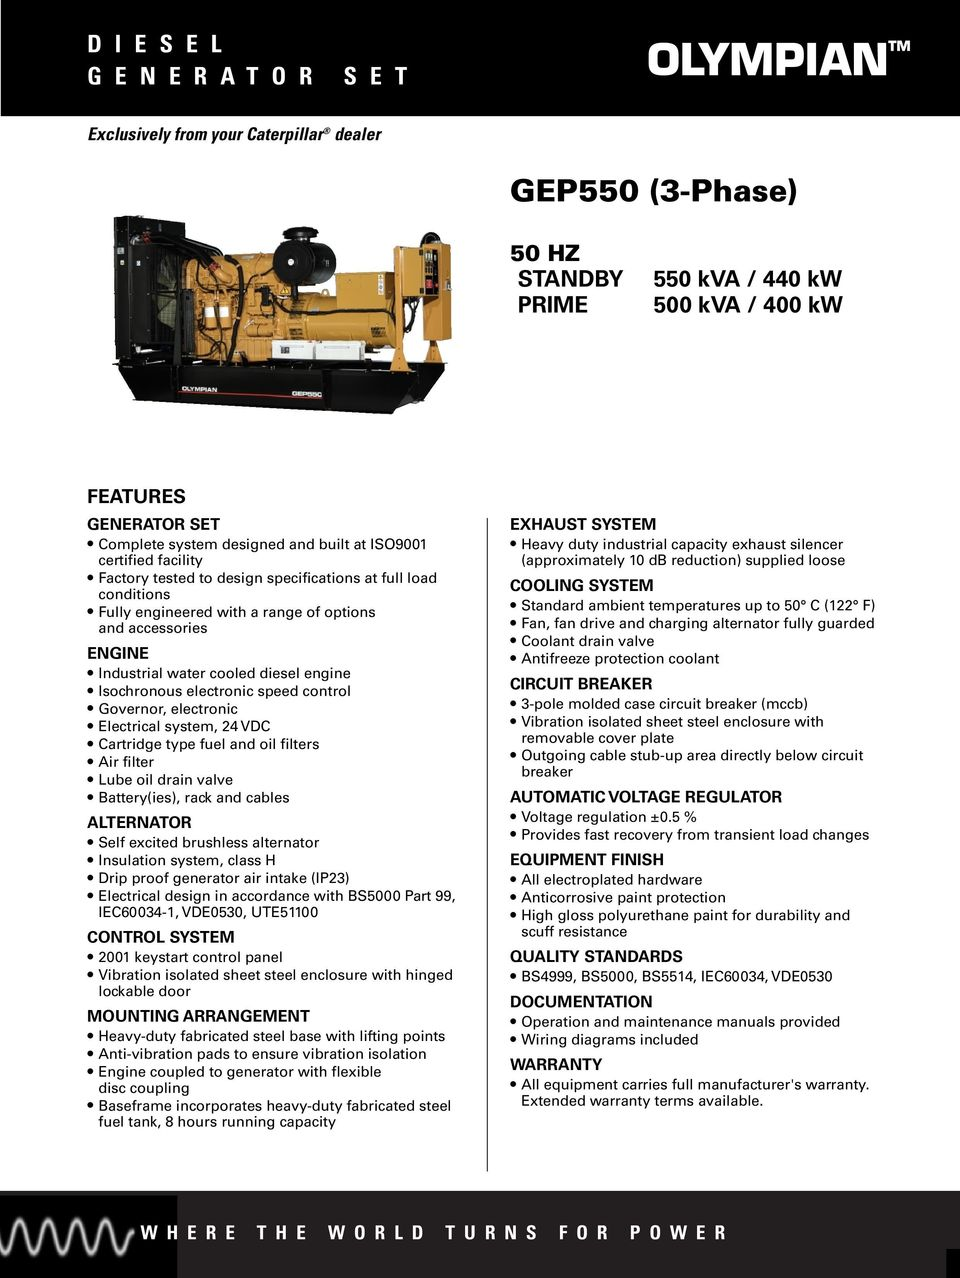 4001e diagram 4001e image wiring diagram gep550 3 phase 50 hz 500 kva 400 kw features exclusively on 4001e diagram